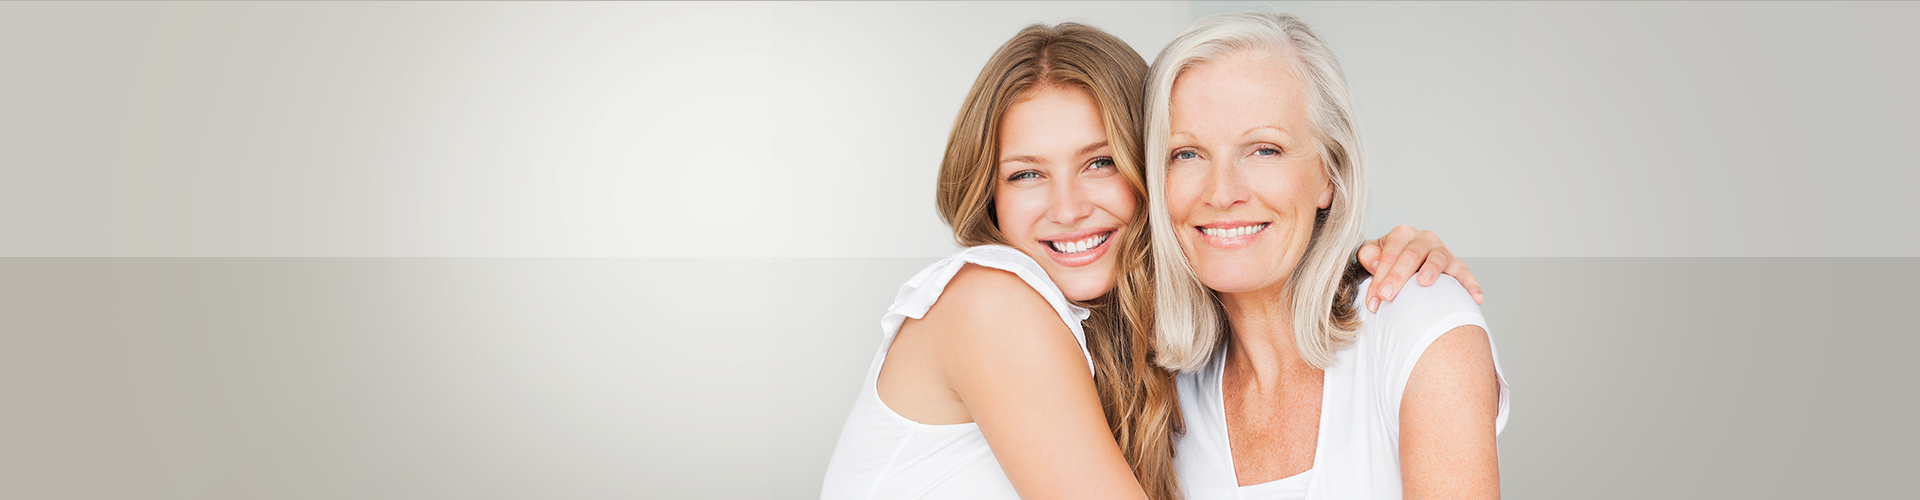 elk grove village mature women personals Catholic singles over 50 look through the profiles of member singles here at over 50 personals that are tagged with catholic male elk grove village.